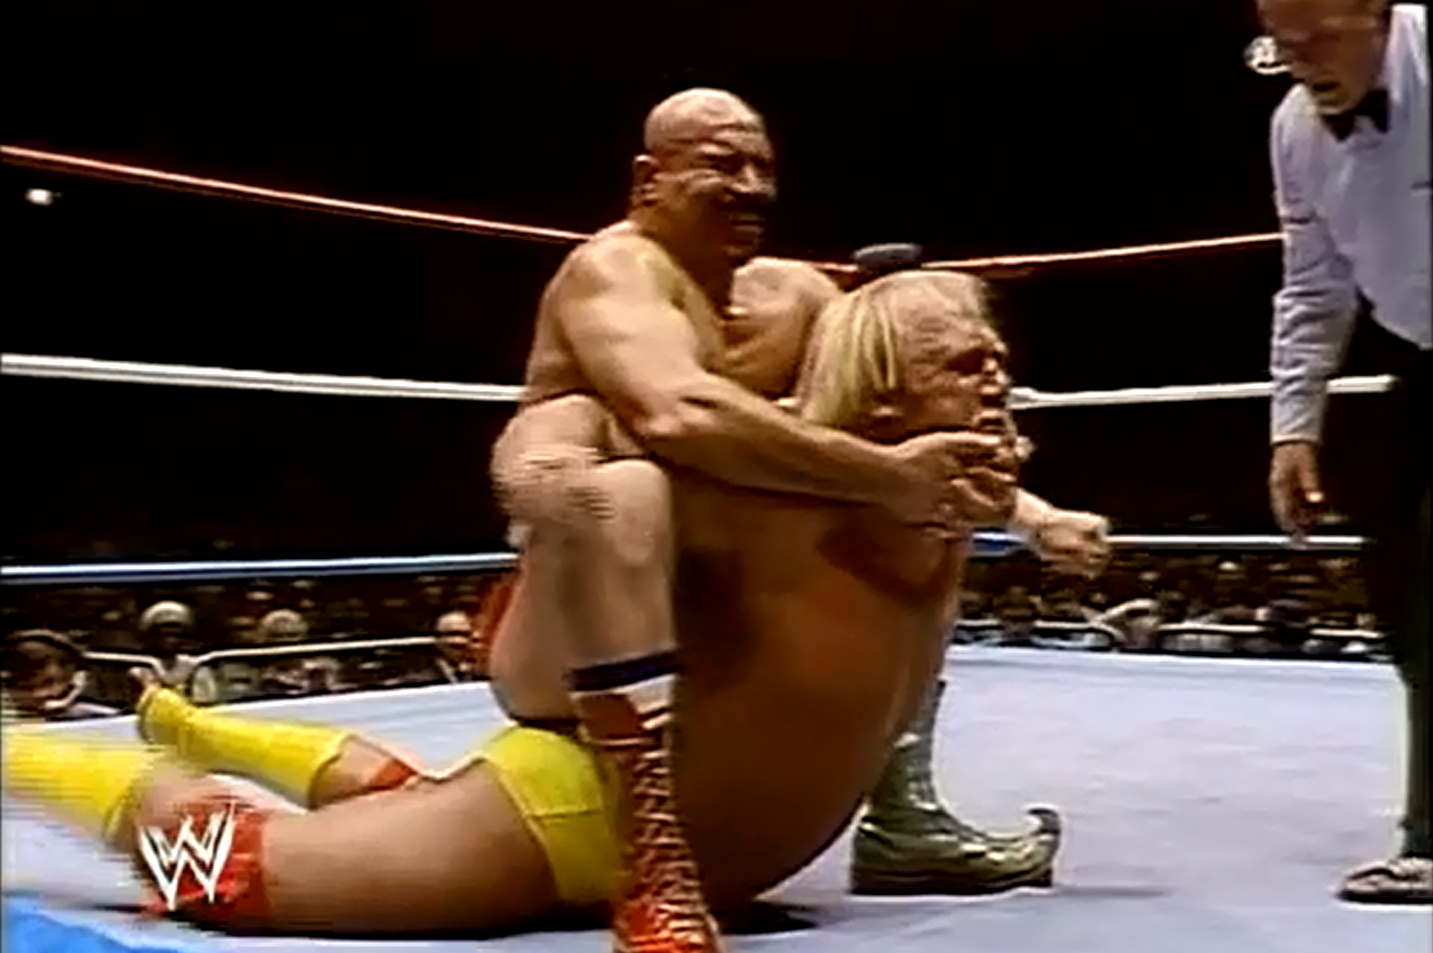 The Iron Sheik wrestling with Hulk Hogan, 1984 (Photo courtesy of WWE)